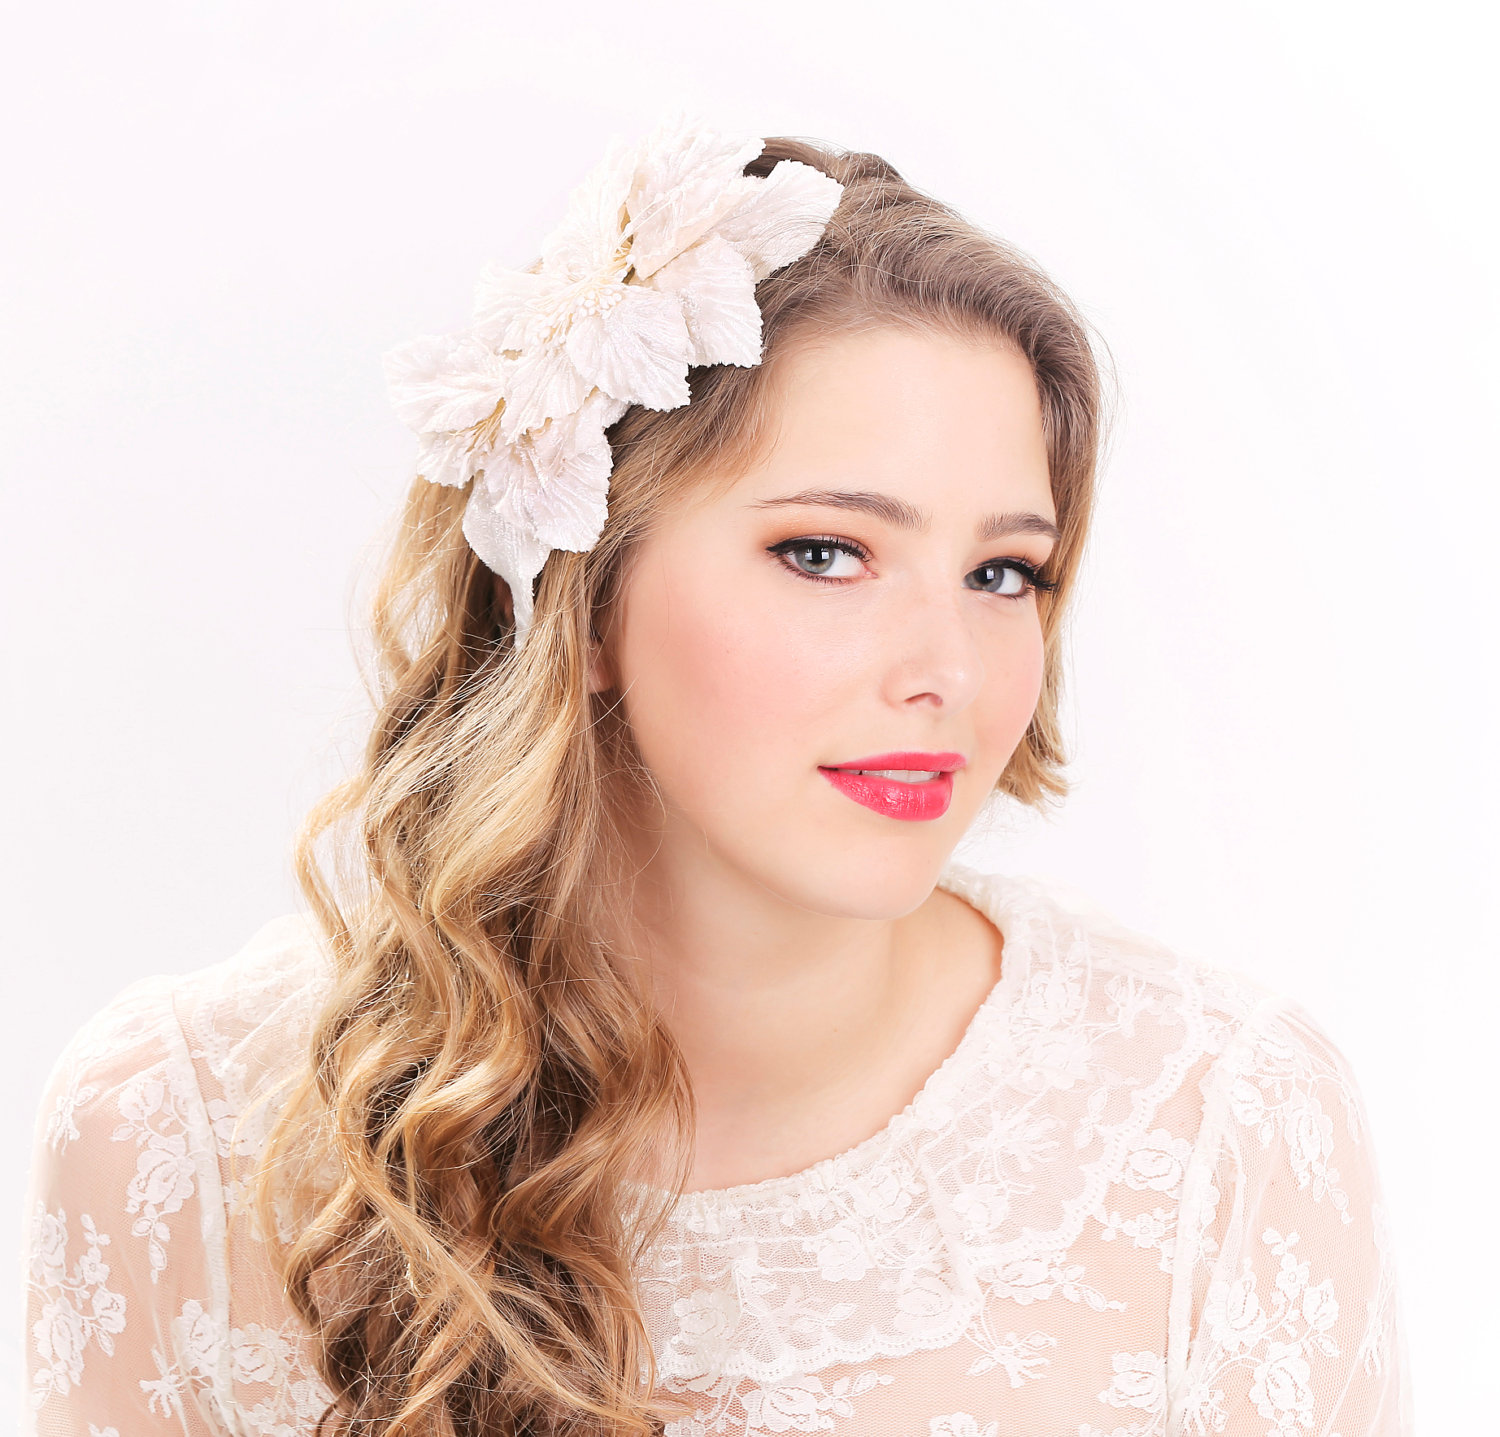 Bridal headband bridal headpiece wedding hair accessories wedding bridal headband bridal headpiece wedding hair accessories wedding headband ivory flower hair crown junglespirit Image collections